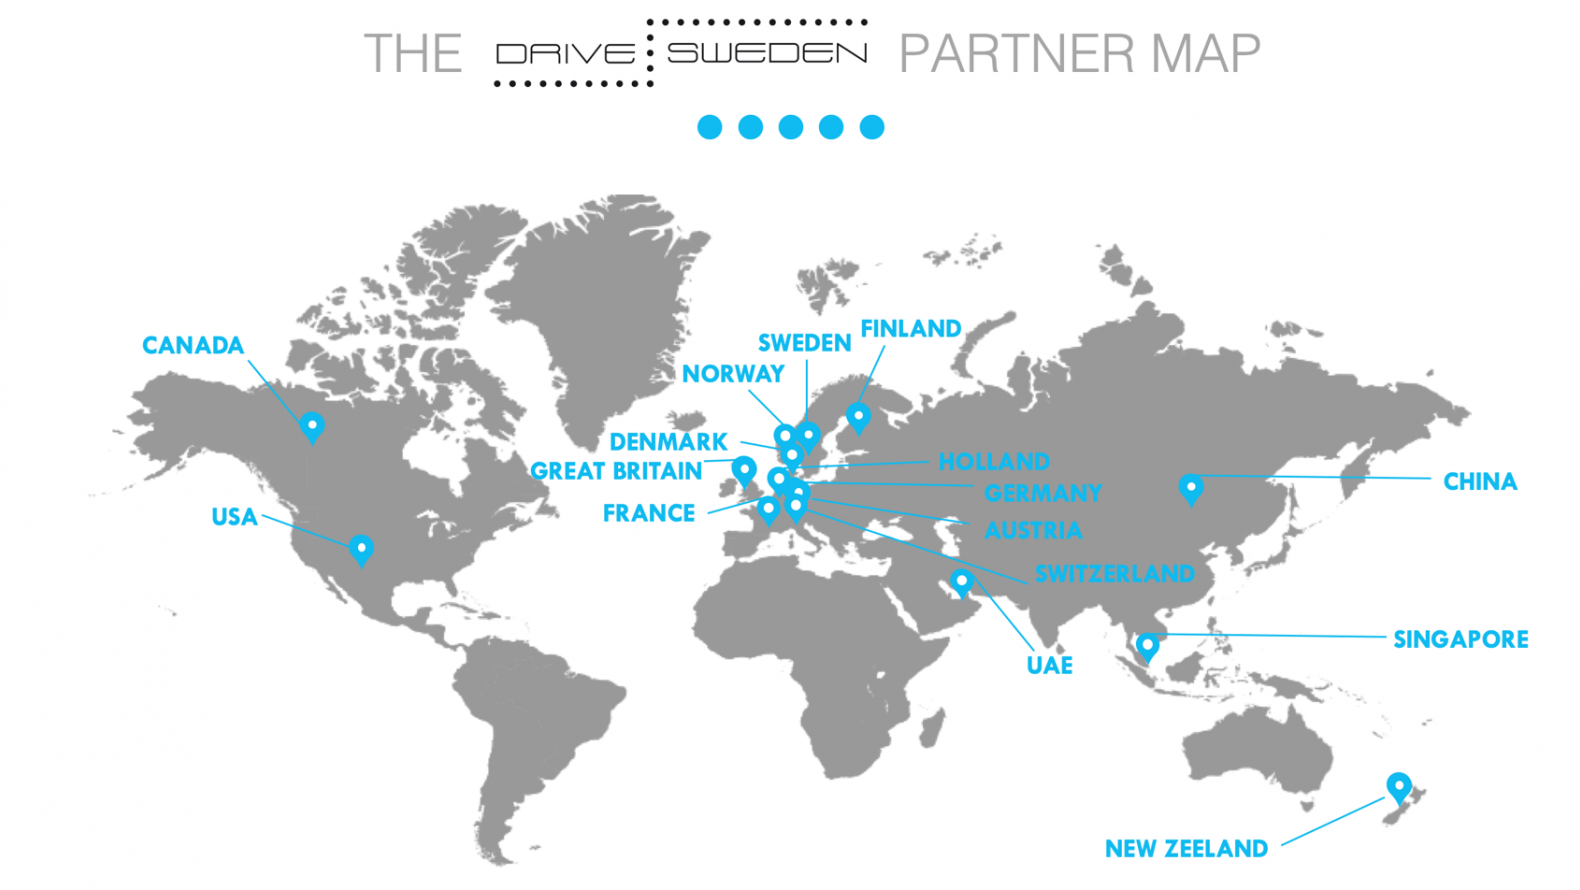 A map of where Drive Sweden's partners are located around the world.